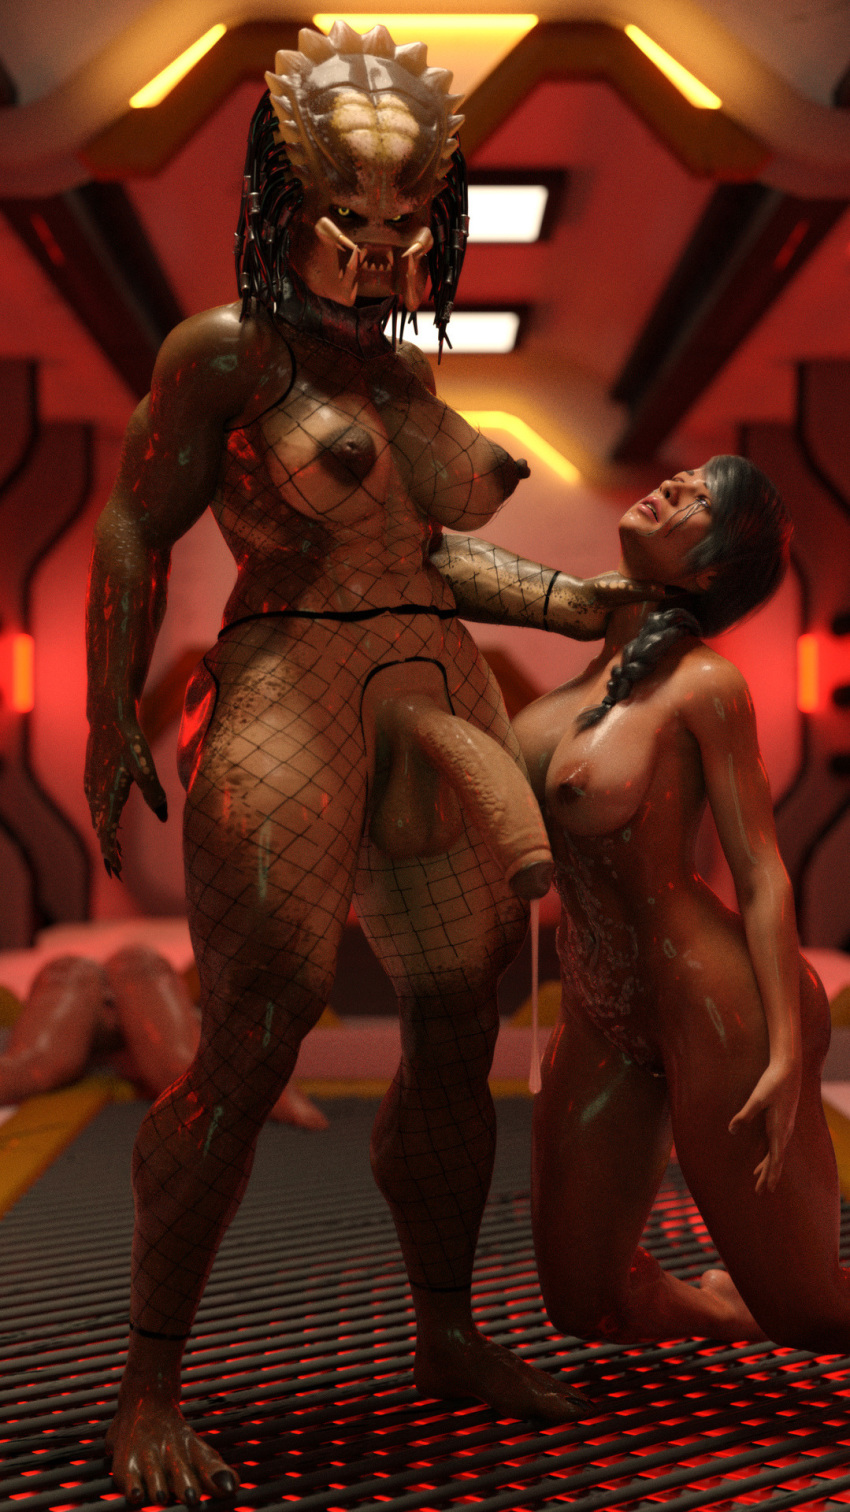 3d after_sex aftermath alien areolae ass balls ballsack big_breasts big_penis black_hair braid breasts choke claws club_shaped_penis cum cum_drip cum_on_body cum_string dangling_testicles dreadlocks eye_roll eyes_rolling_back female fishnet_bodysuit fishnets futa futa_on_female futadom futanari gape gaping_pussy grate green_scales grey_hair hanging_balls huge_breasts huge_cock large_breasts low_hanging_testicles mascara mascara_tears muscular muscular_futanari neck_grab nipples nude oiled passed_out penis predator predator_(franchise) red_lips retracted_foreskin rolling_eyes ruined_makeup running_mascara runny_makeup scales shiny_skin squarepeg3d tagme thick_cum thick_thighs throat_grab two_tone_scales unconscious used yautja